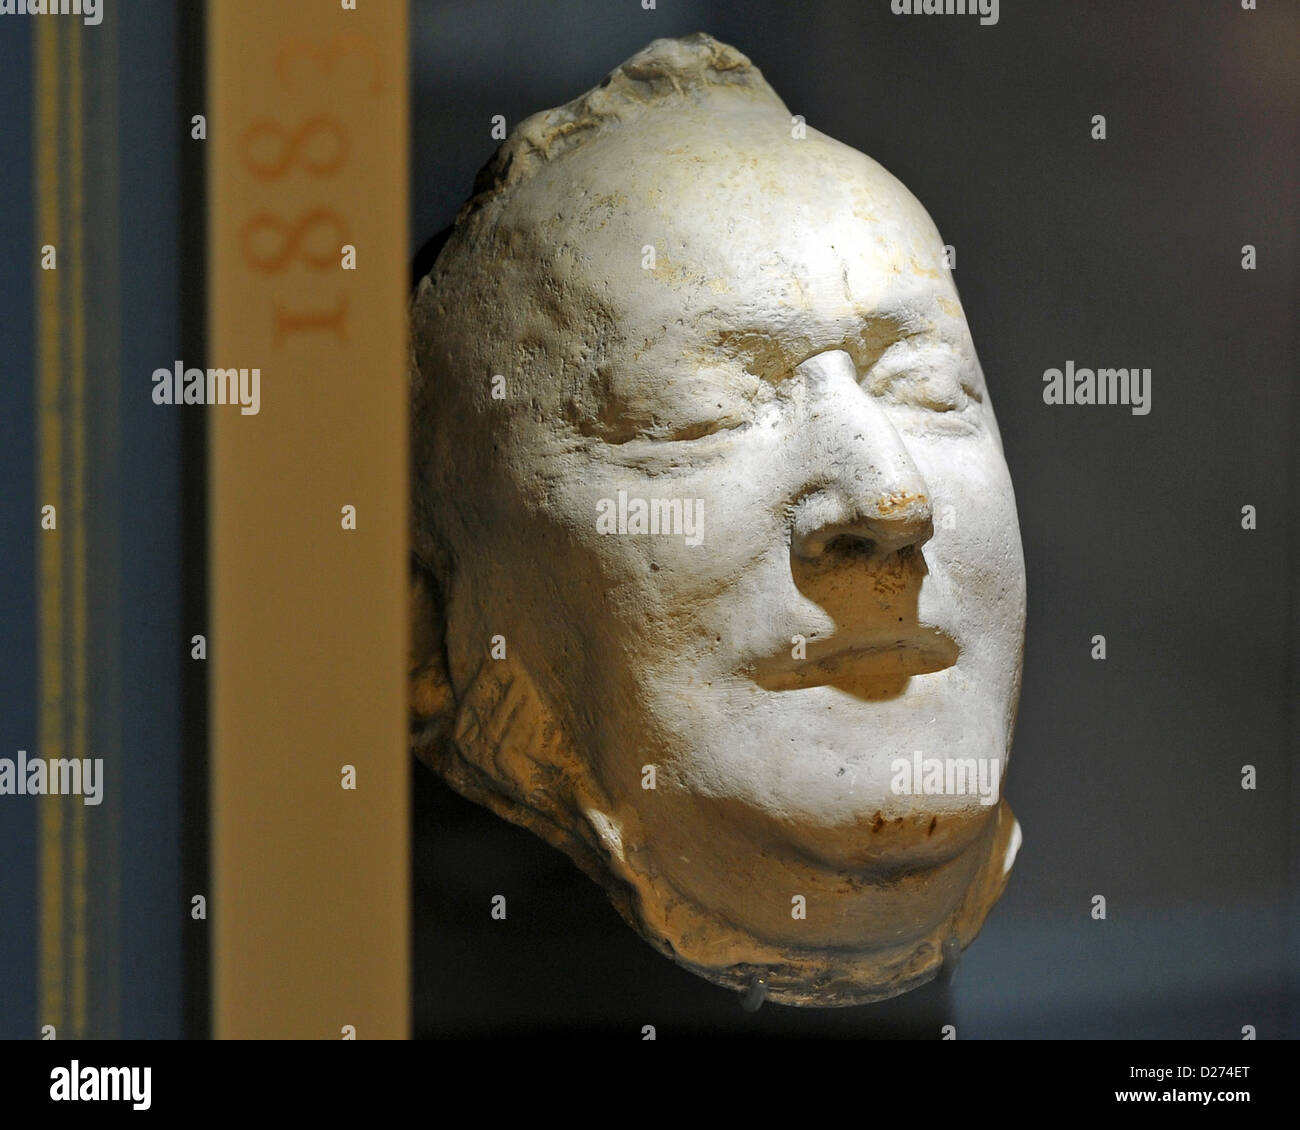 The death mask of Richard Wagner is on display in the new Richard-Wagner Museum located in the refurbished hunting - Stock Image